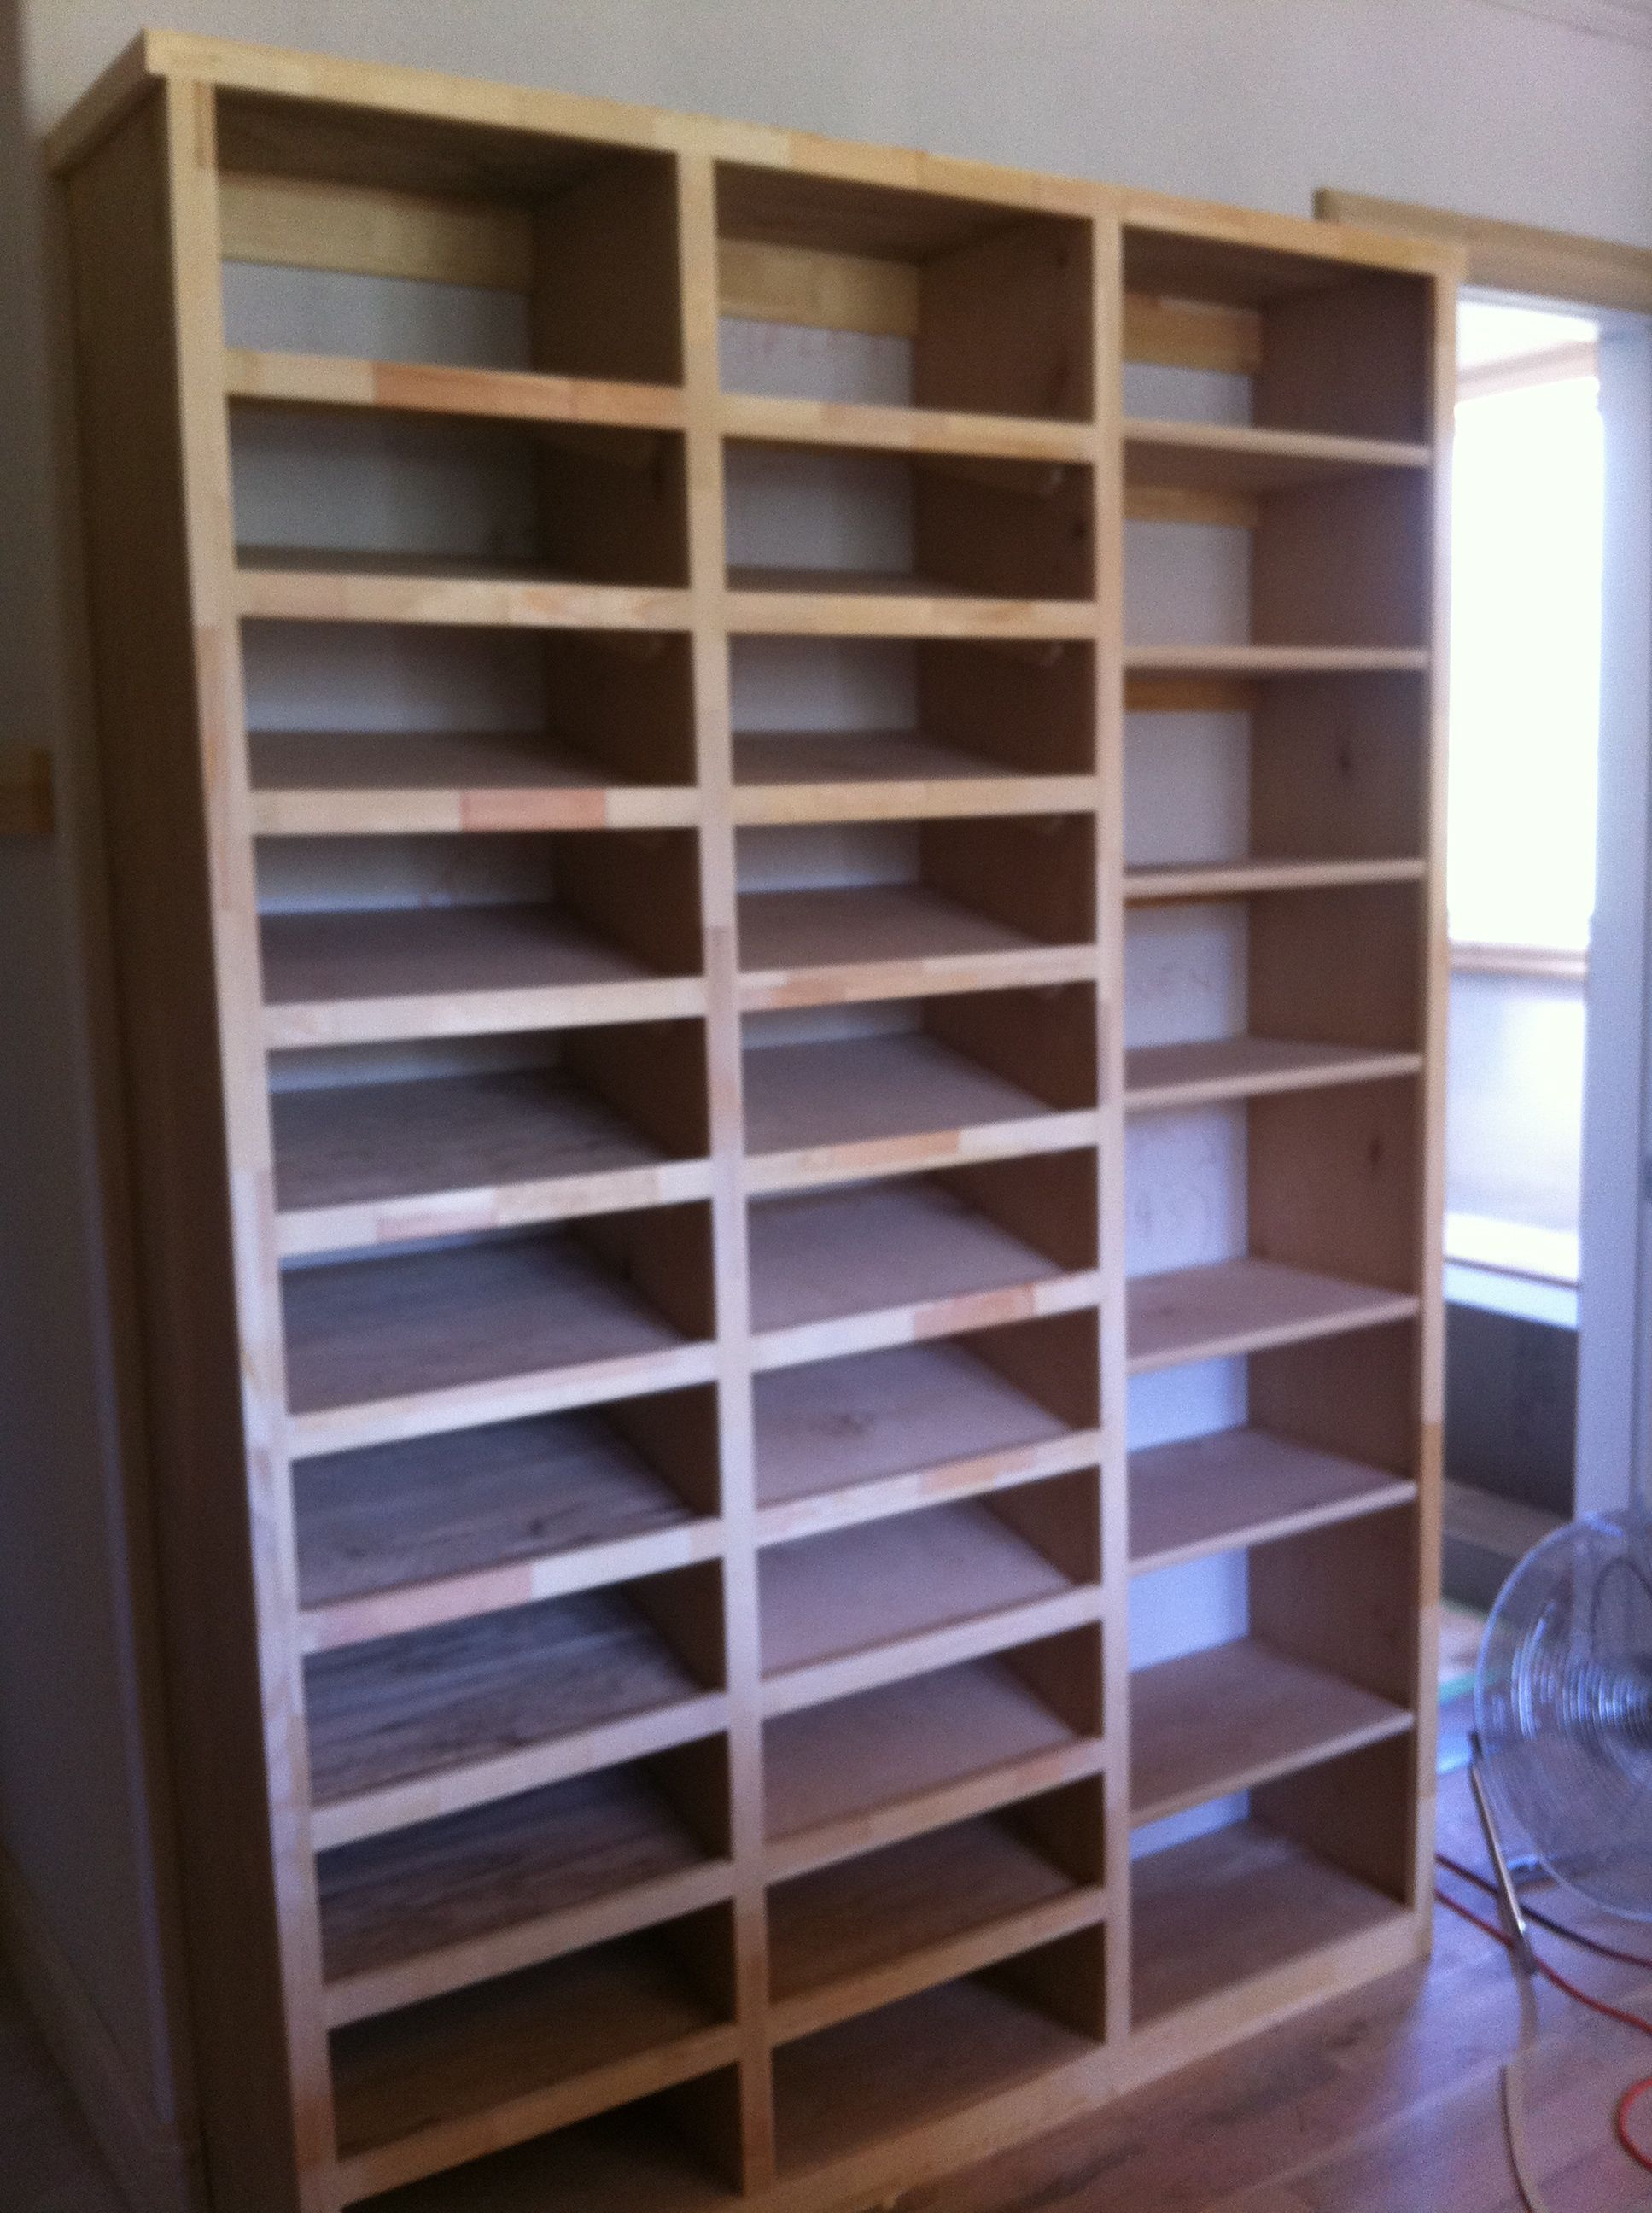 Good Custom Shoe Rack In A Closet In Pinnacle | My Carpentry Work | Pinterest | Custom  Shoes, Shoe Rack And Carpentry